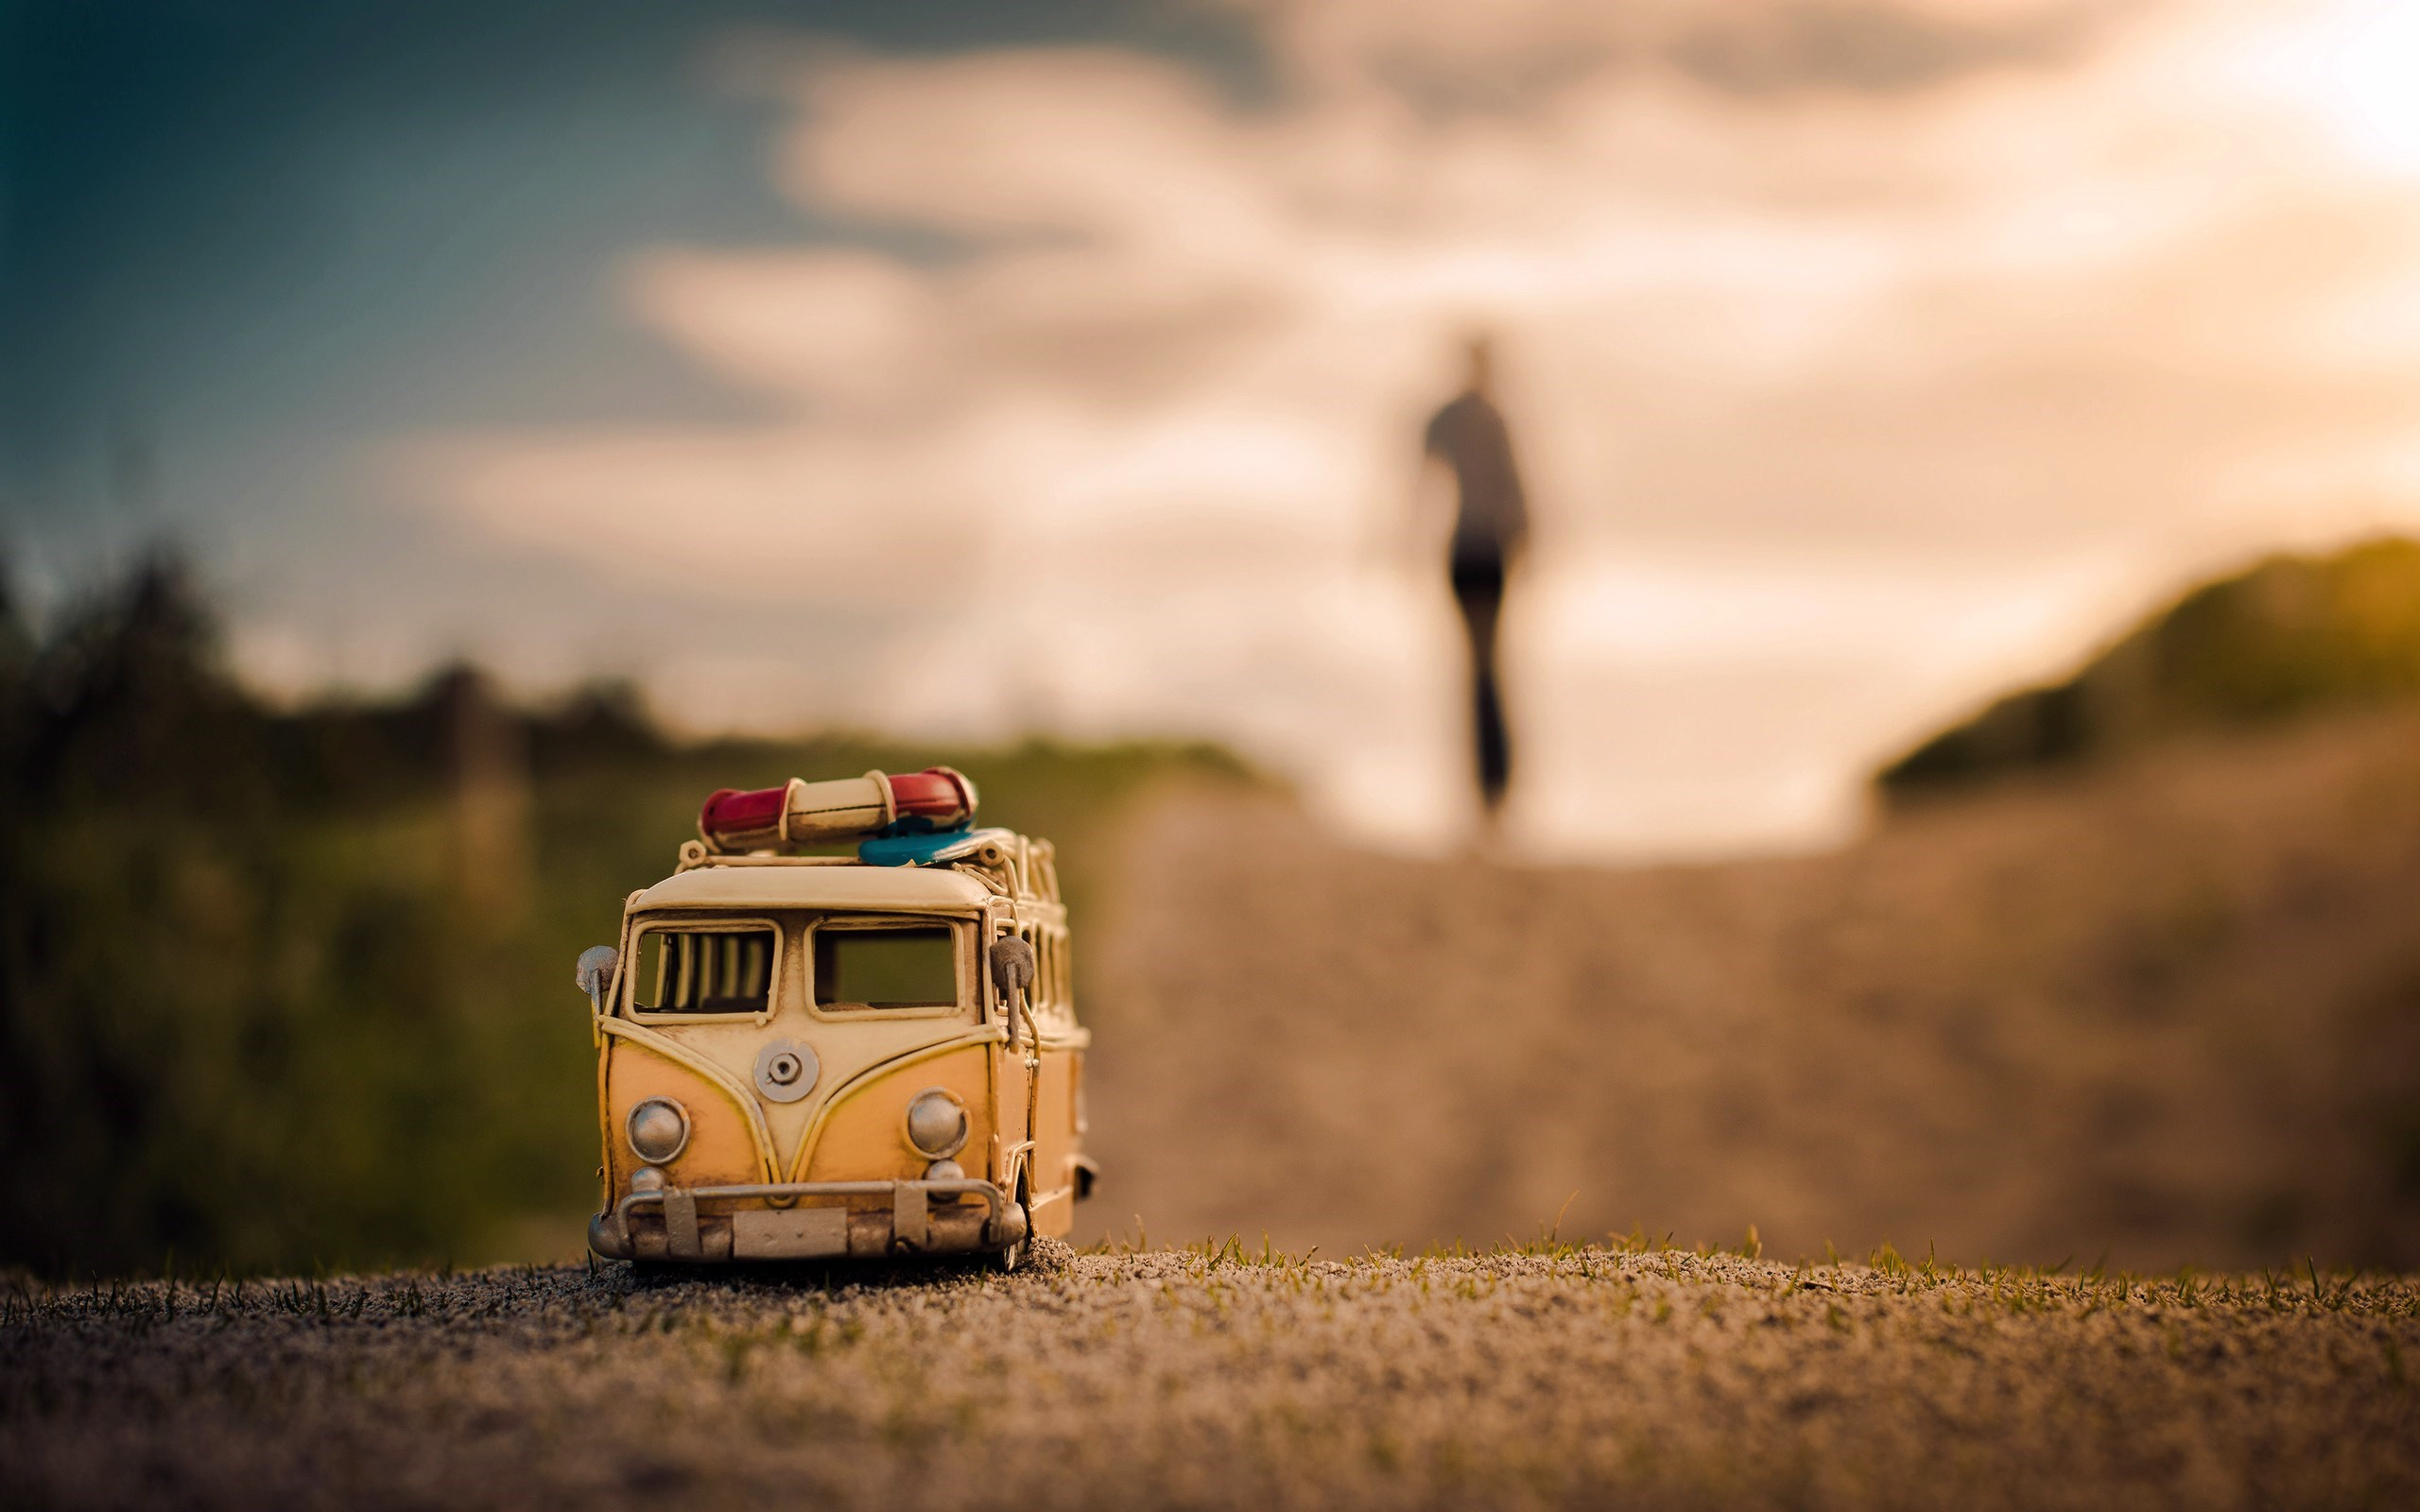 Volkswagen Bus Toy Road